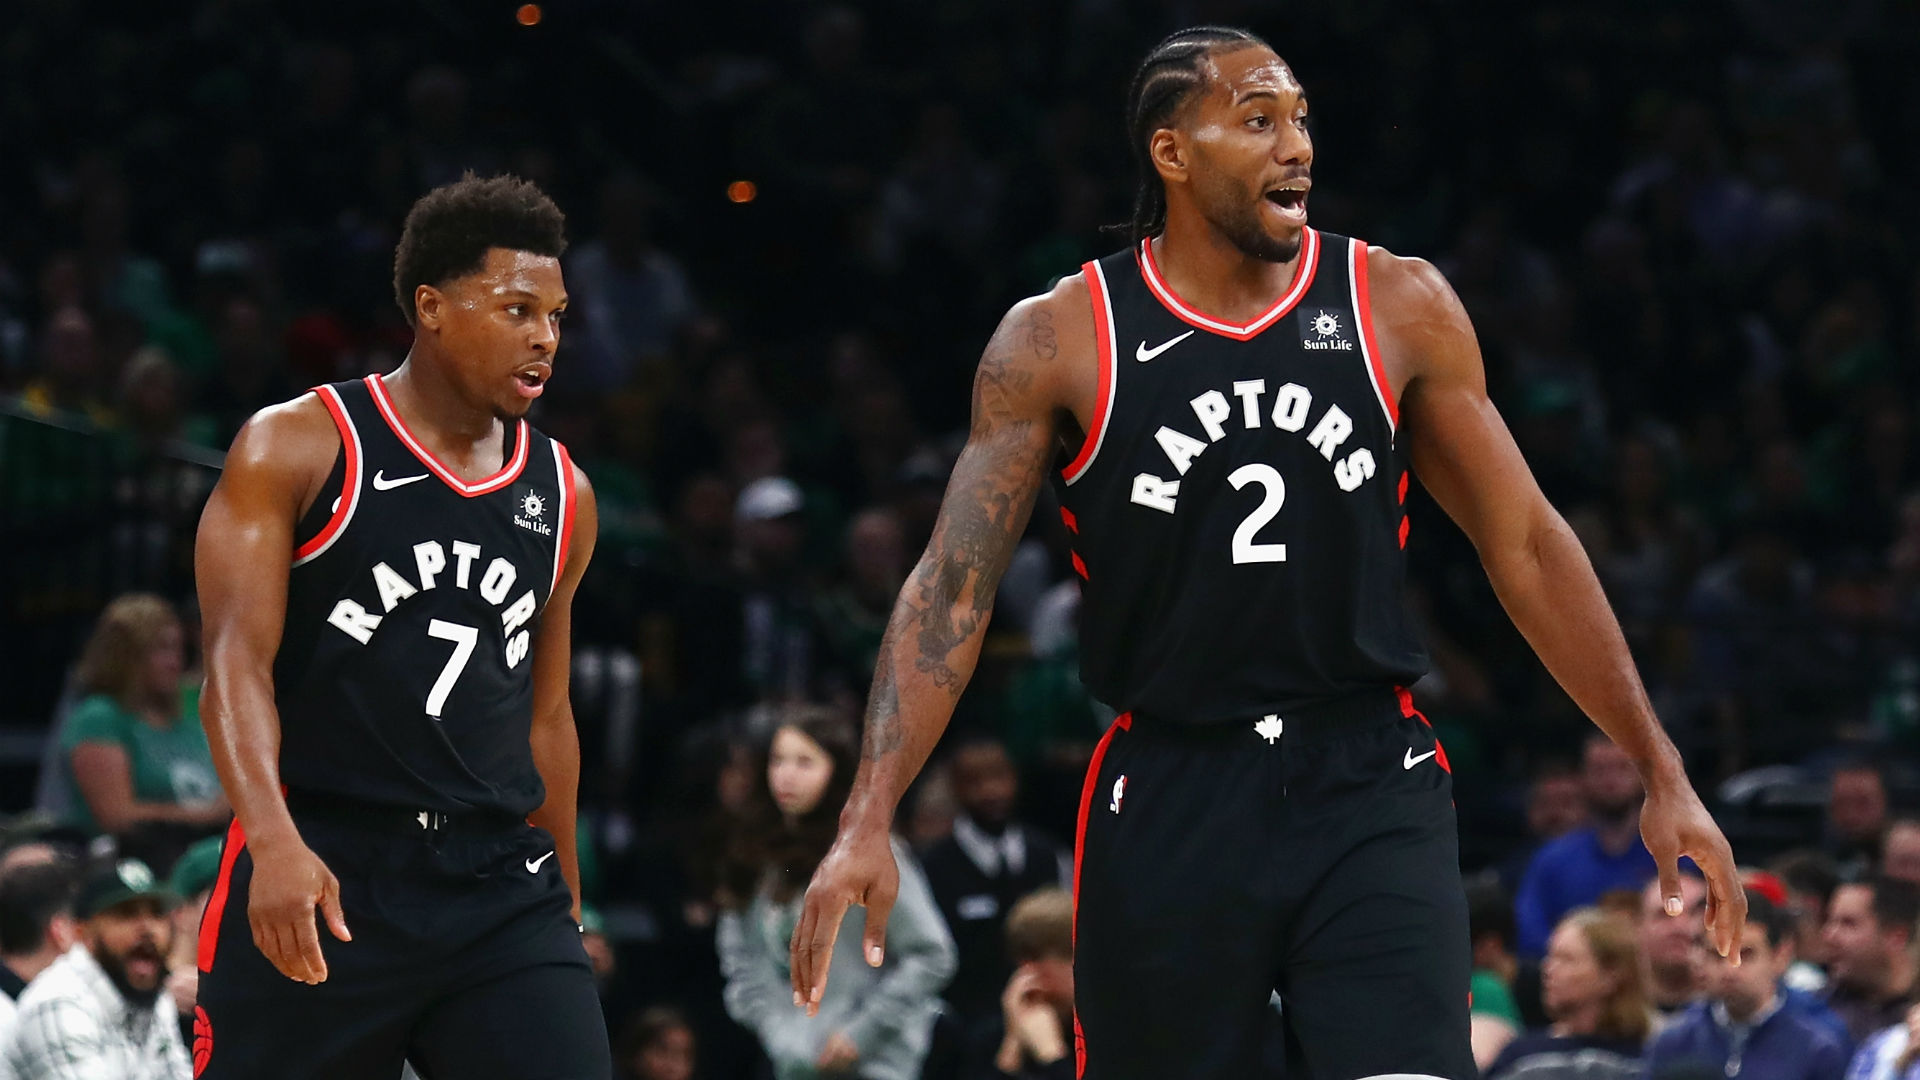 Raptors News: NBA Trade Rumors: With Kyle Lowry Out, Raptors Search For